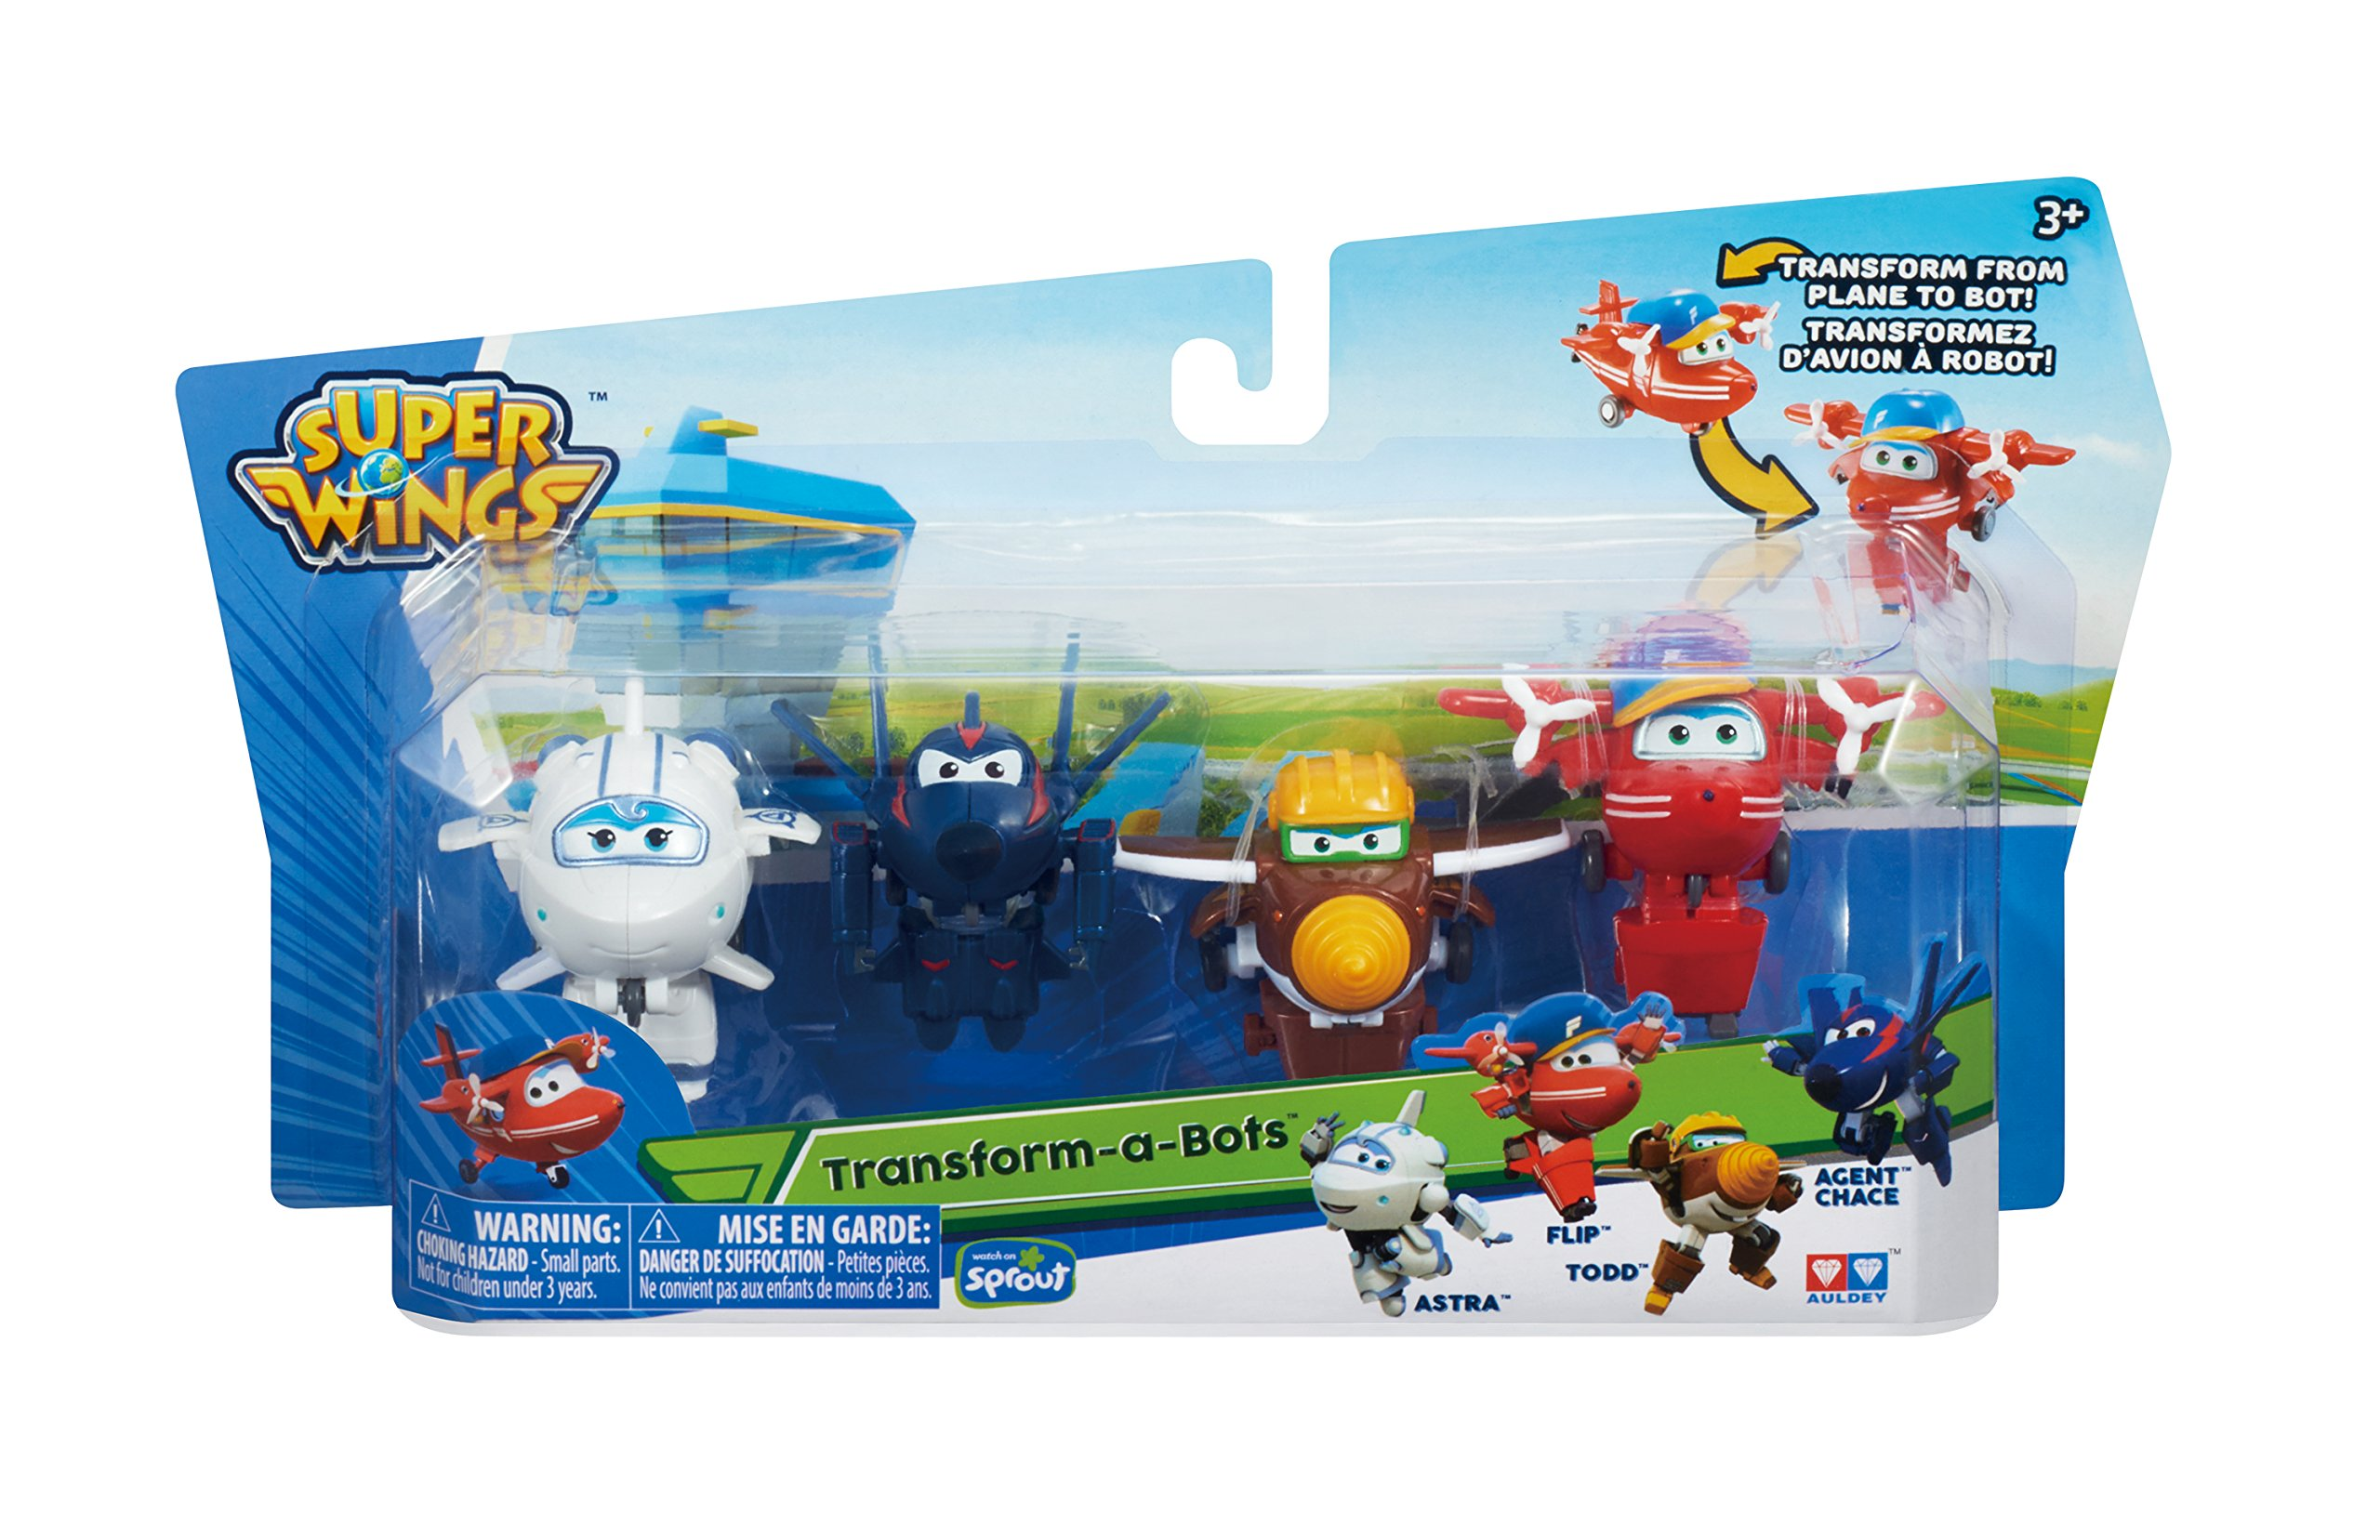 Super Wings - Transform-a-Bots 4 Pack   Flip, Todd, Agent Chase, Astra   Toy Figures   2'' Scale by Super Wings